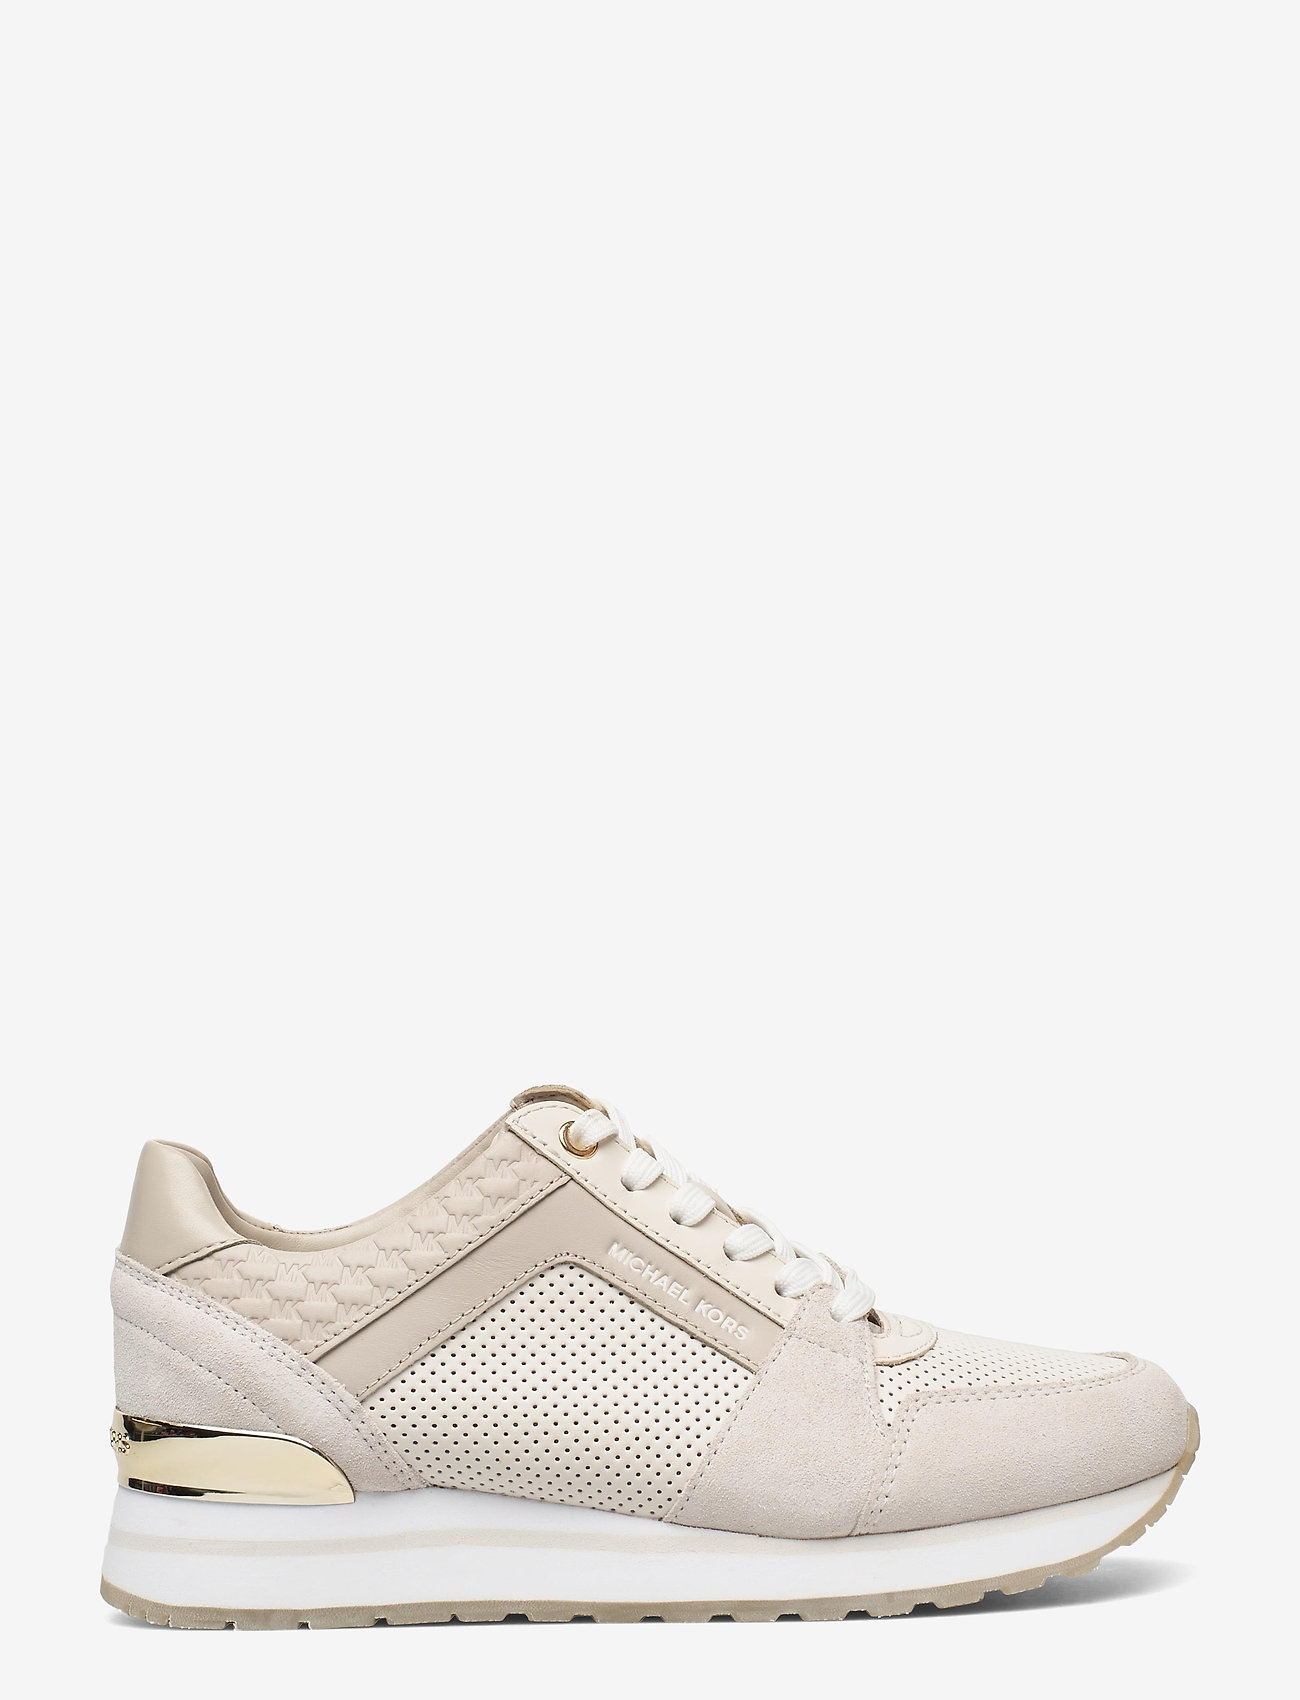 Michael Kors Shoes - BILLIE TRAINER - low top sneakers - cream - 1